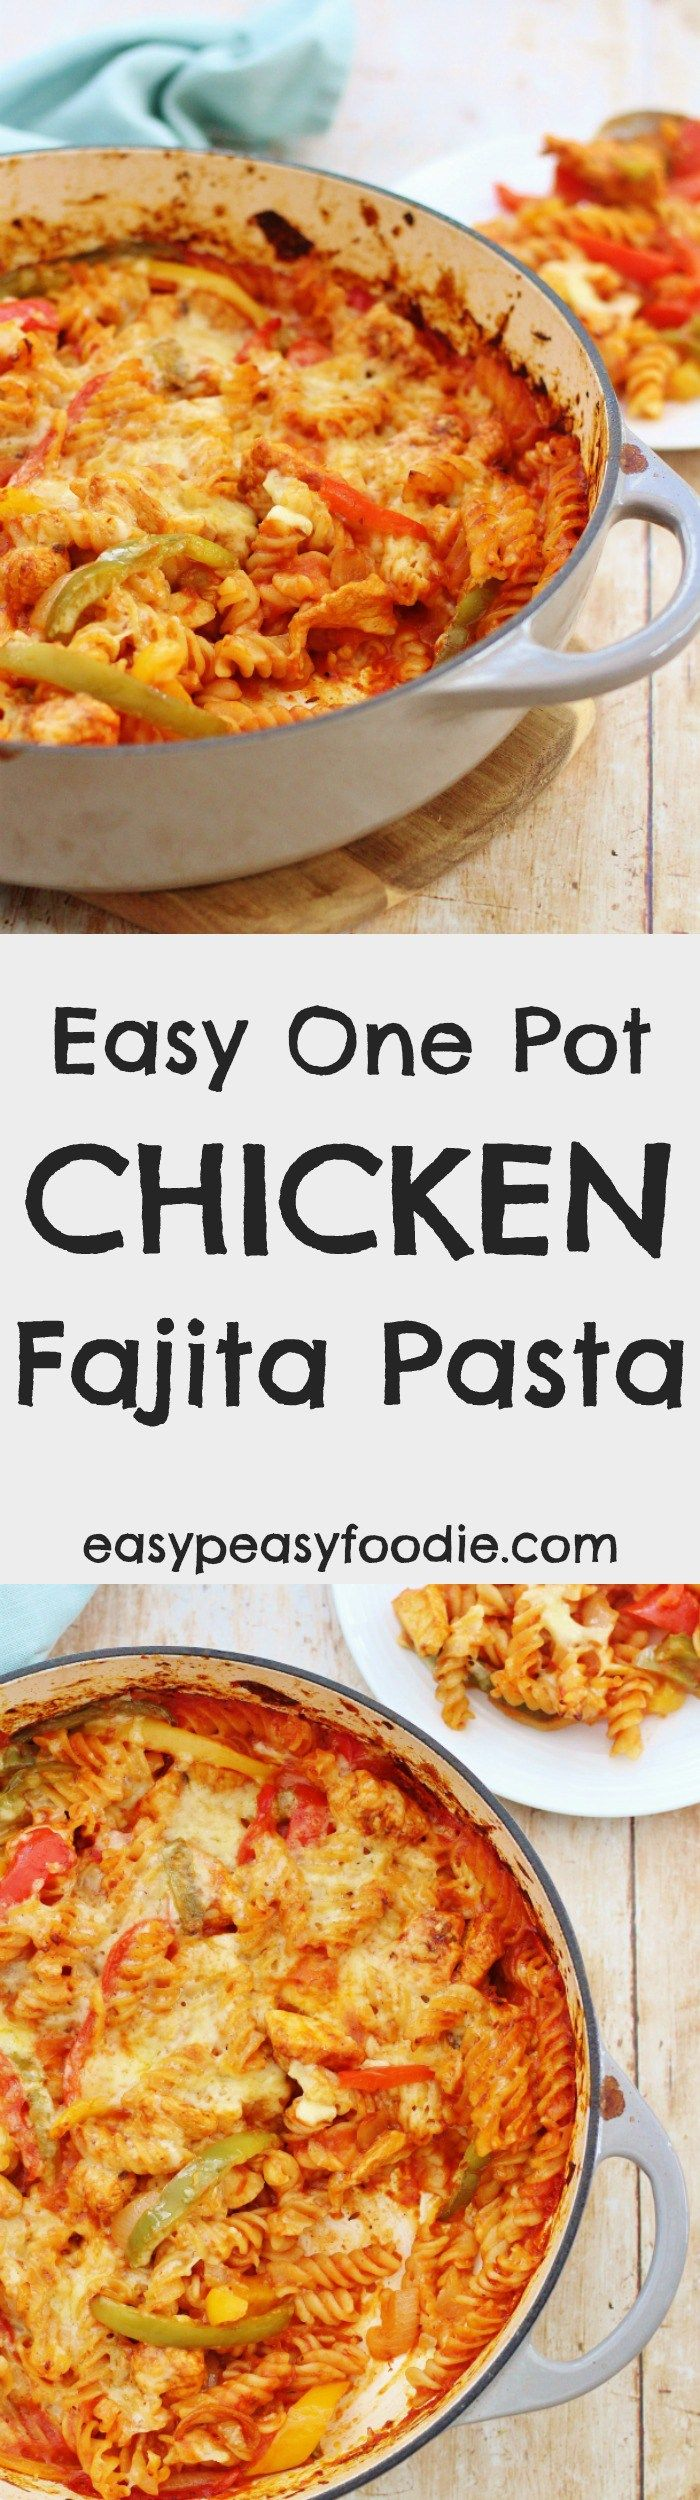 Delicious, quick and family friendly, this Easy One Pot Chicken Fajita Pasta Bake is the perfect midweek meal. The pasta is cooked 'al dente', the chicken is tender, the fajita sauce just coats the pasta beautifully and the whole lot is covered with oozing, melted cheese. And the best part? It's all done in one dish, so this recipe is easy on the washing up too! #onepot #chicken #fajita #pasta #chickenfajitapasta #easy #easydinners #midweekmeals #familydinners #brillblogposts…